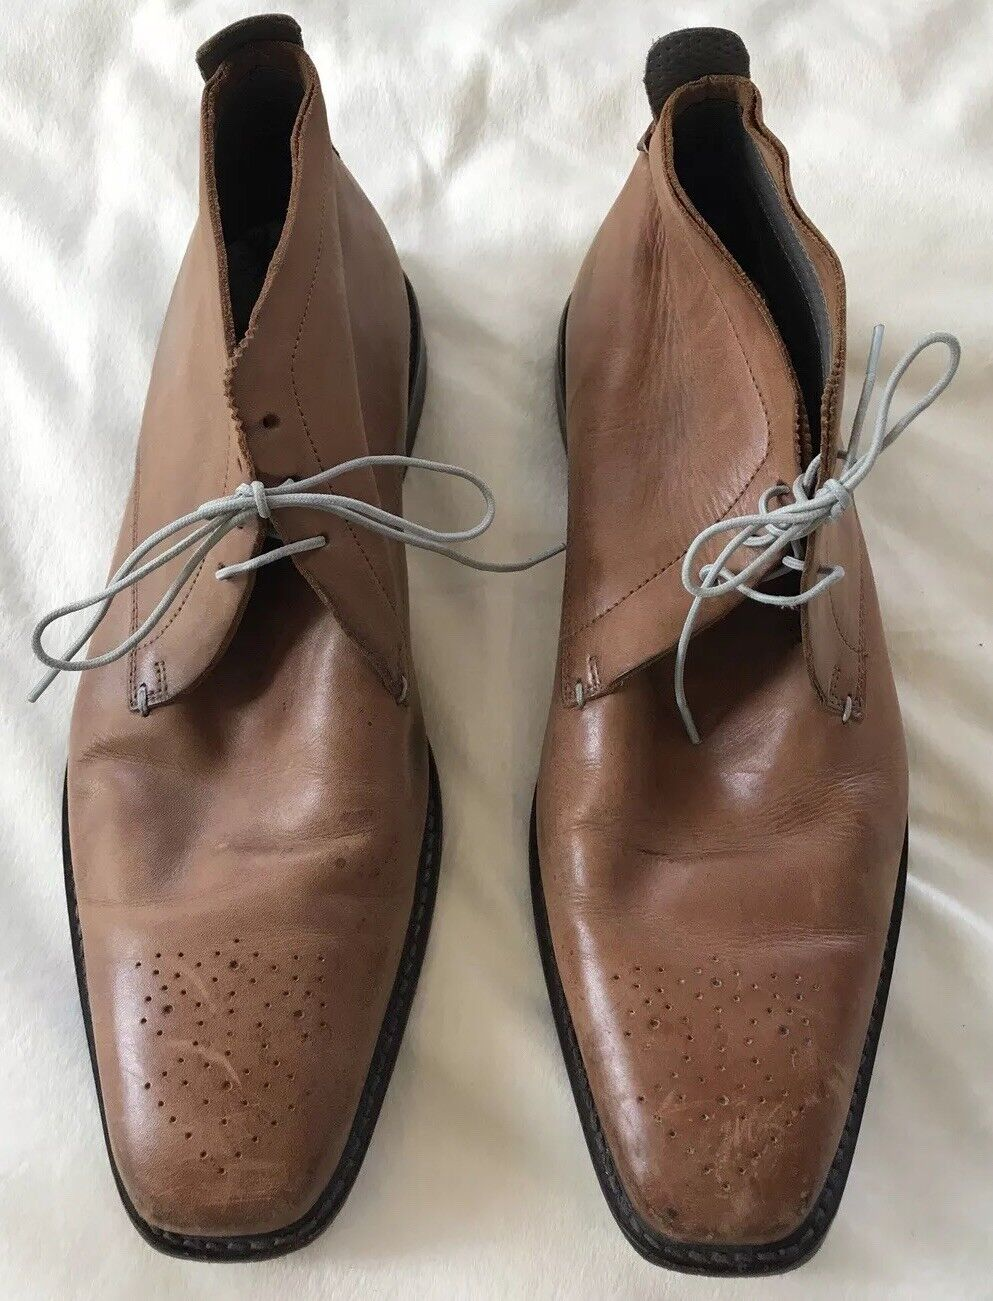 10ad0ade722be2 Ted Baker Chukka Stiefel Men s Größe 11 braun Short Stiefel Stiefel Stiefel  Good Condition Laces schuhe e571d3